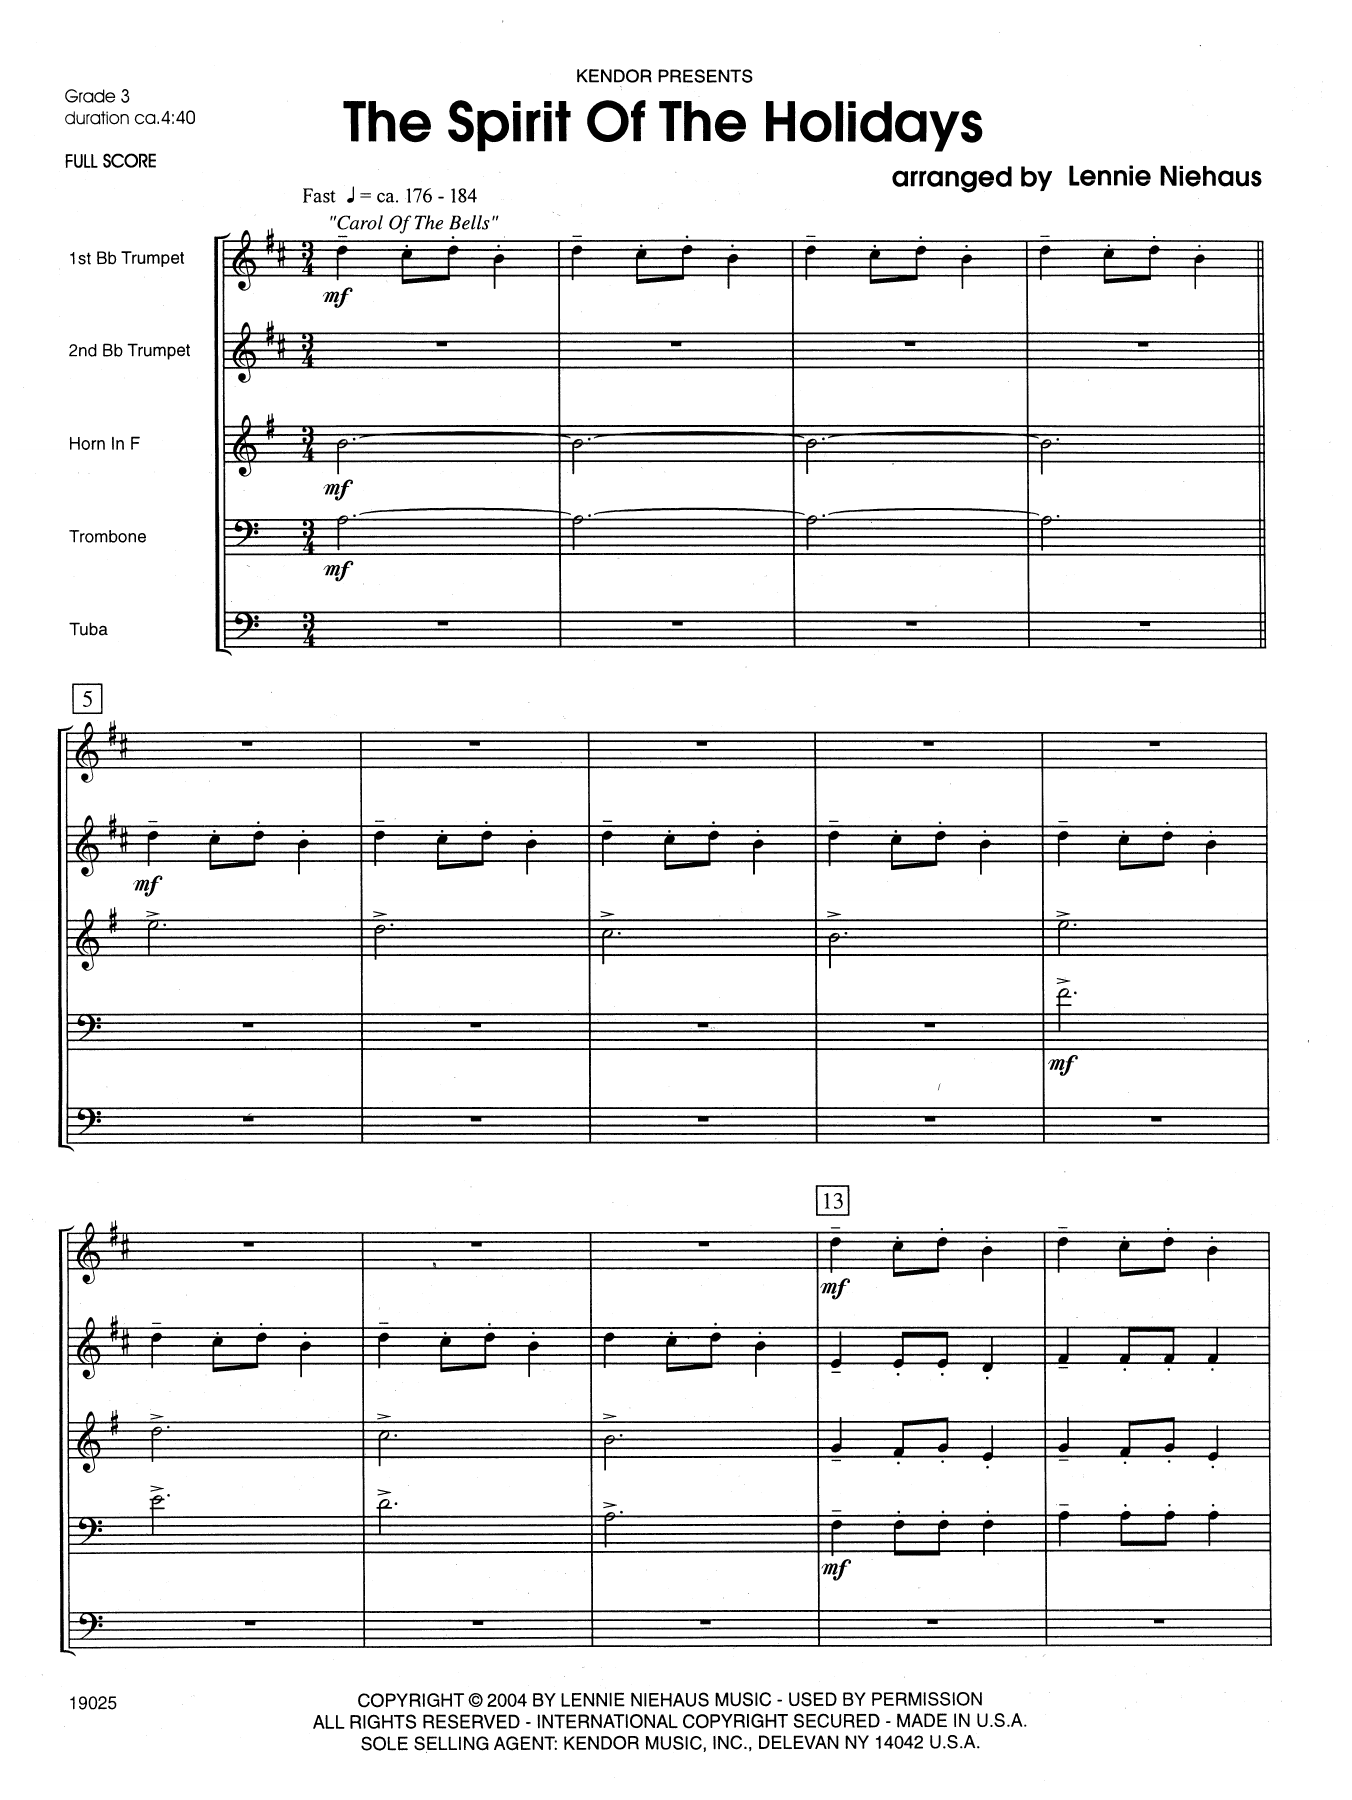 The Spirit Of The Holidays (COMPLETE) sheet music for brass quintet by Lennie Niehaus